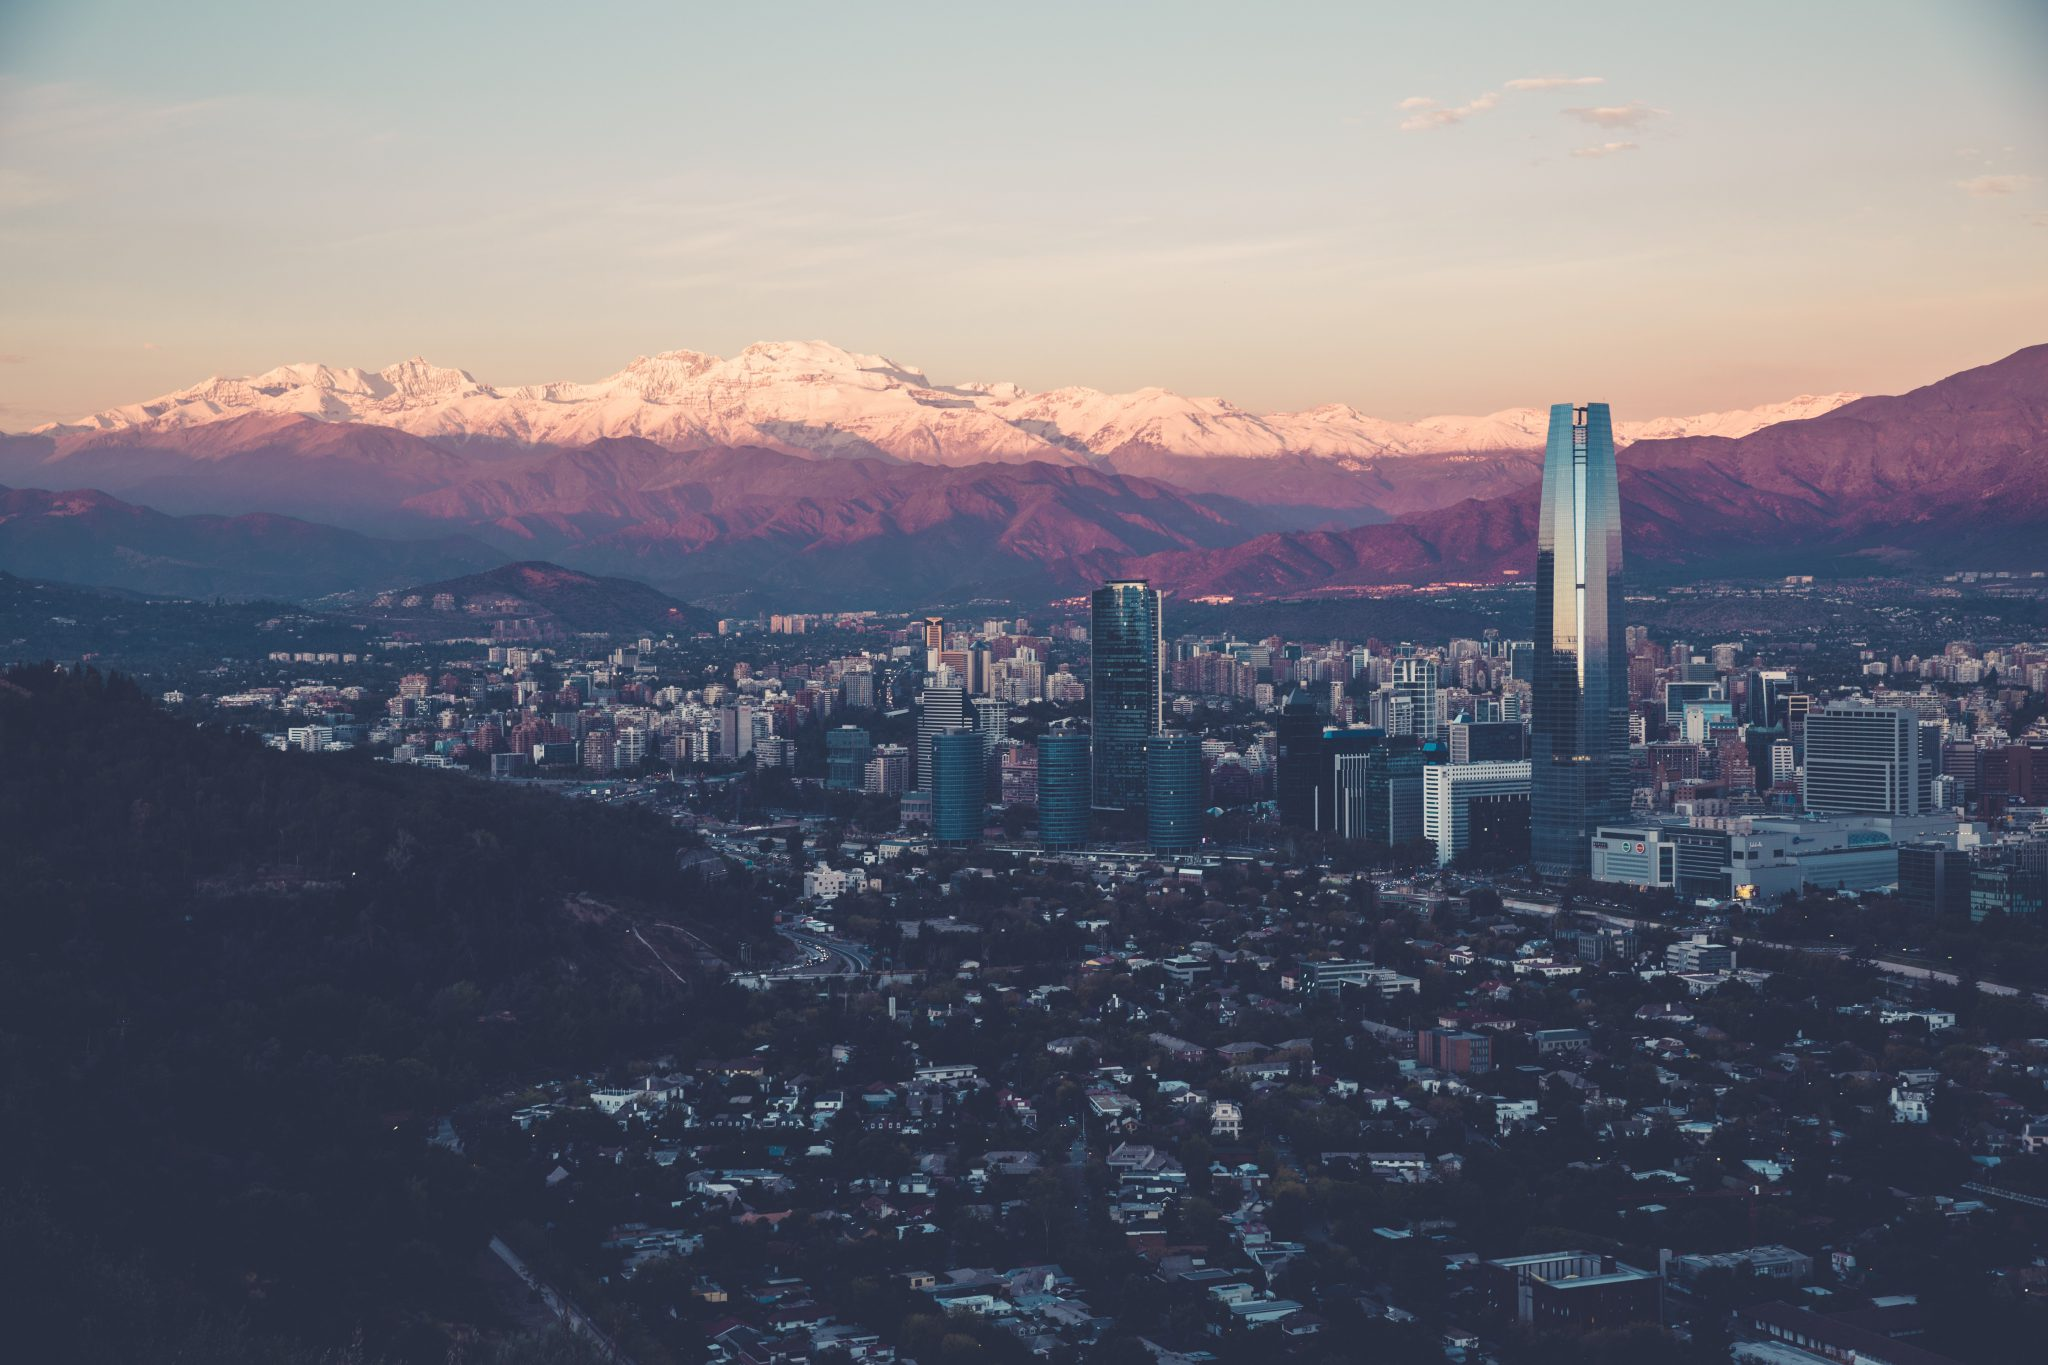 Santiago, Chile city with mountains in background